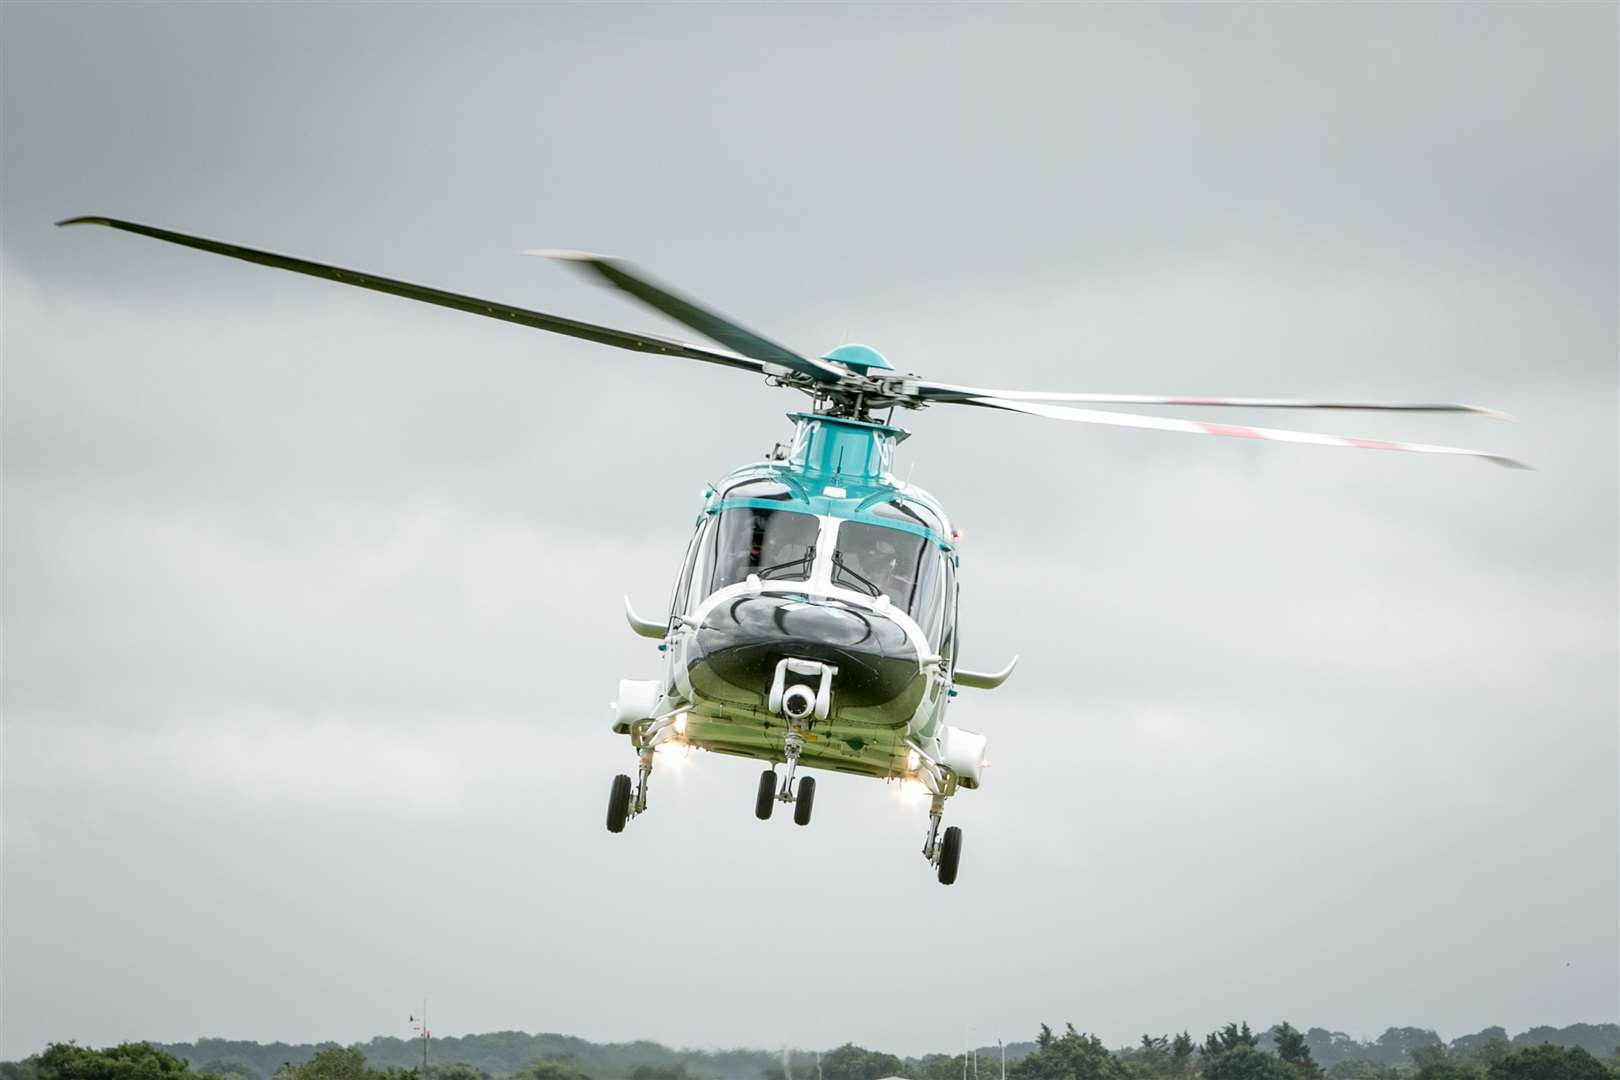 Air Ambulance for Kent, Sussex & Surrey serves a population of 4.8 million. Picture: matthewwalkerphotography.com